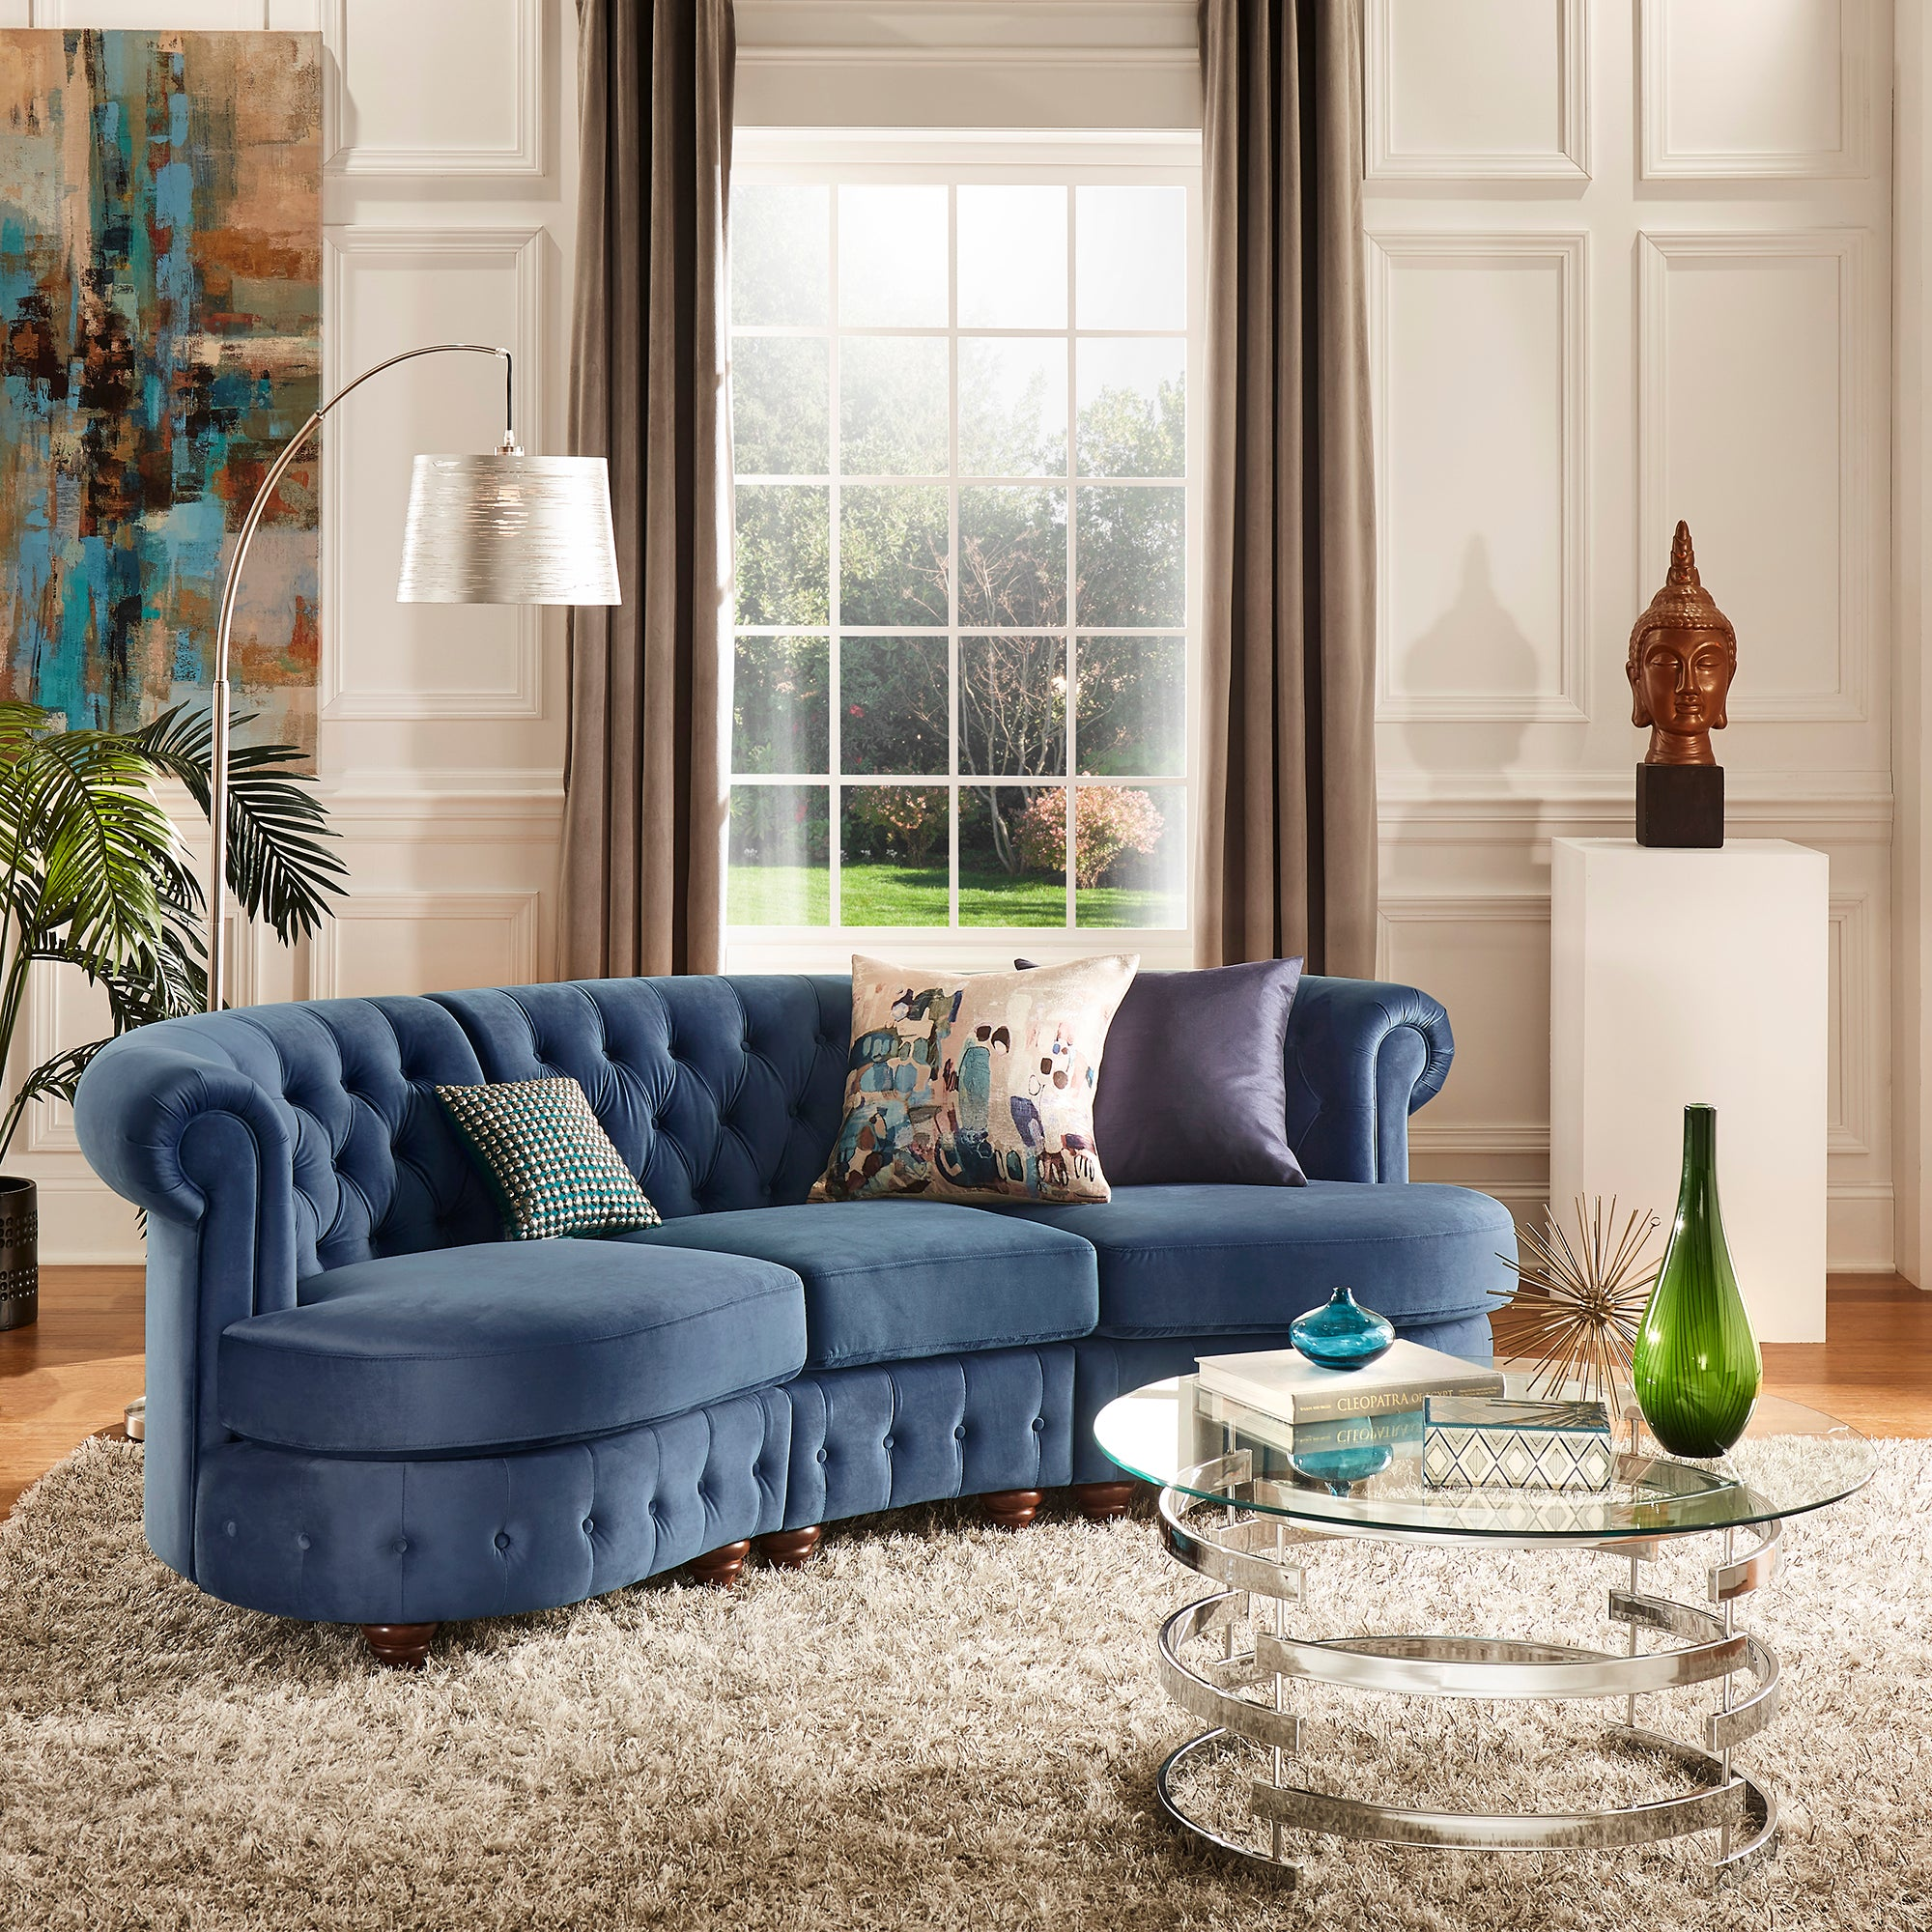 Velvet Tufted Scroll Arm Chesterfield Curved Sofa - Blue